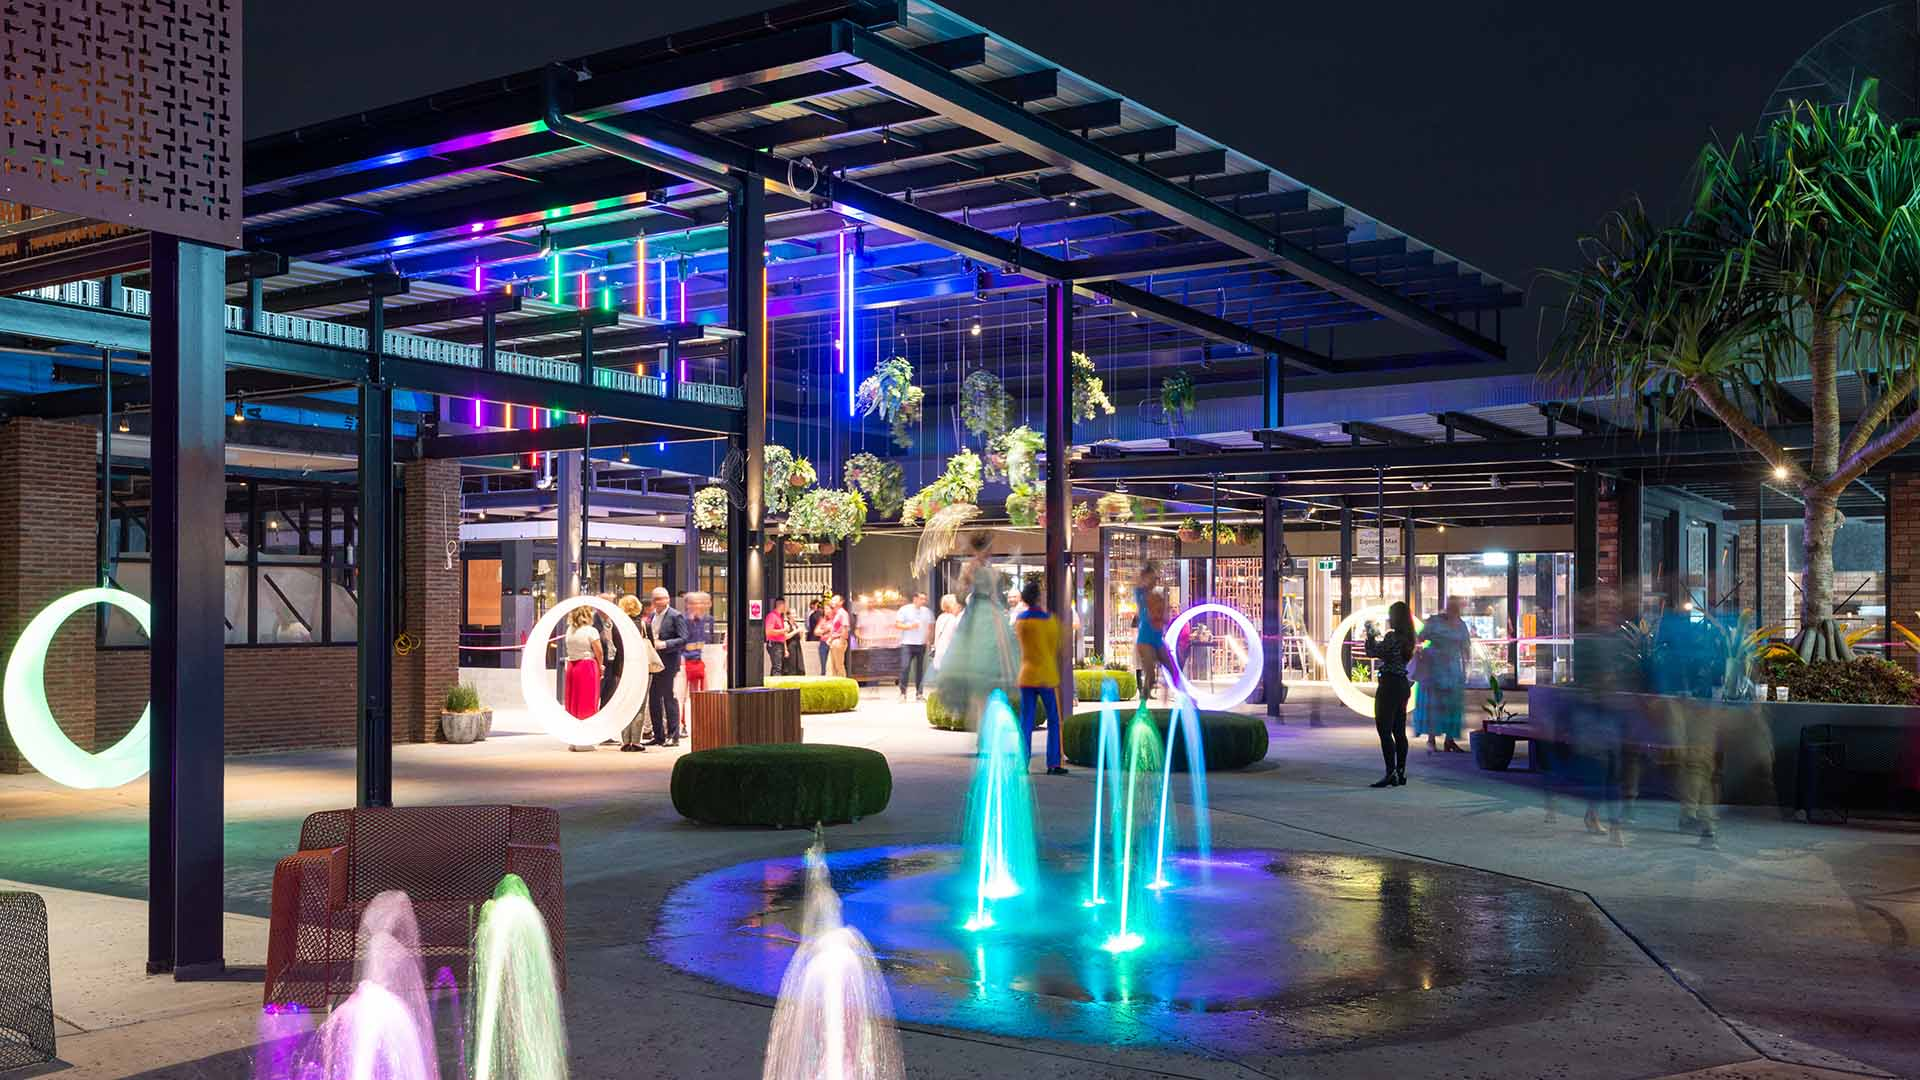 Upstairs at Toombul Is Brisbane's New Neon-Lit, Fountain-Filled Food Precinct